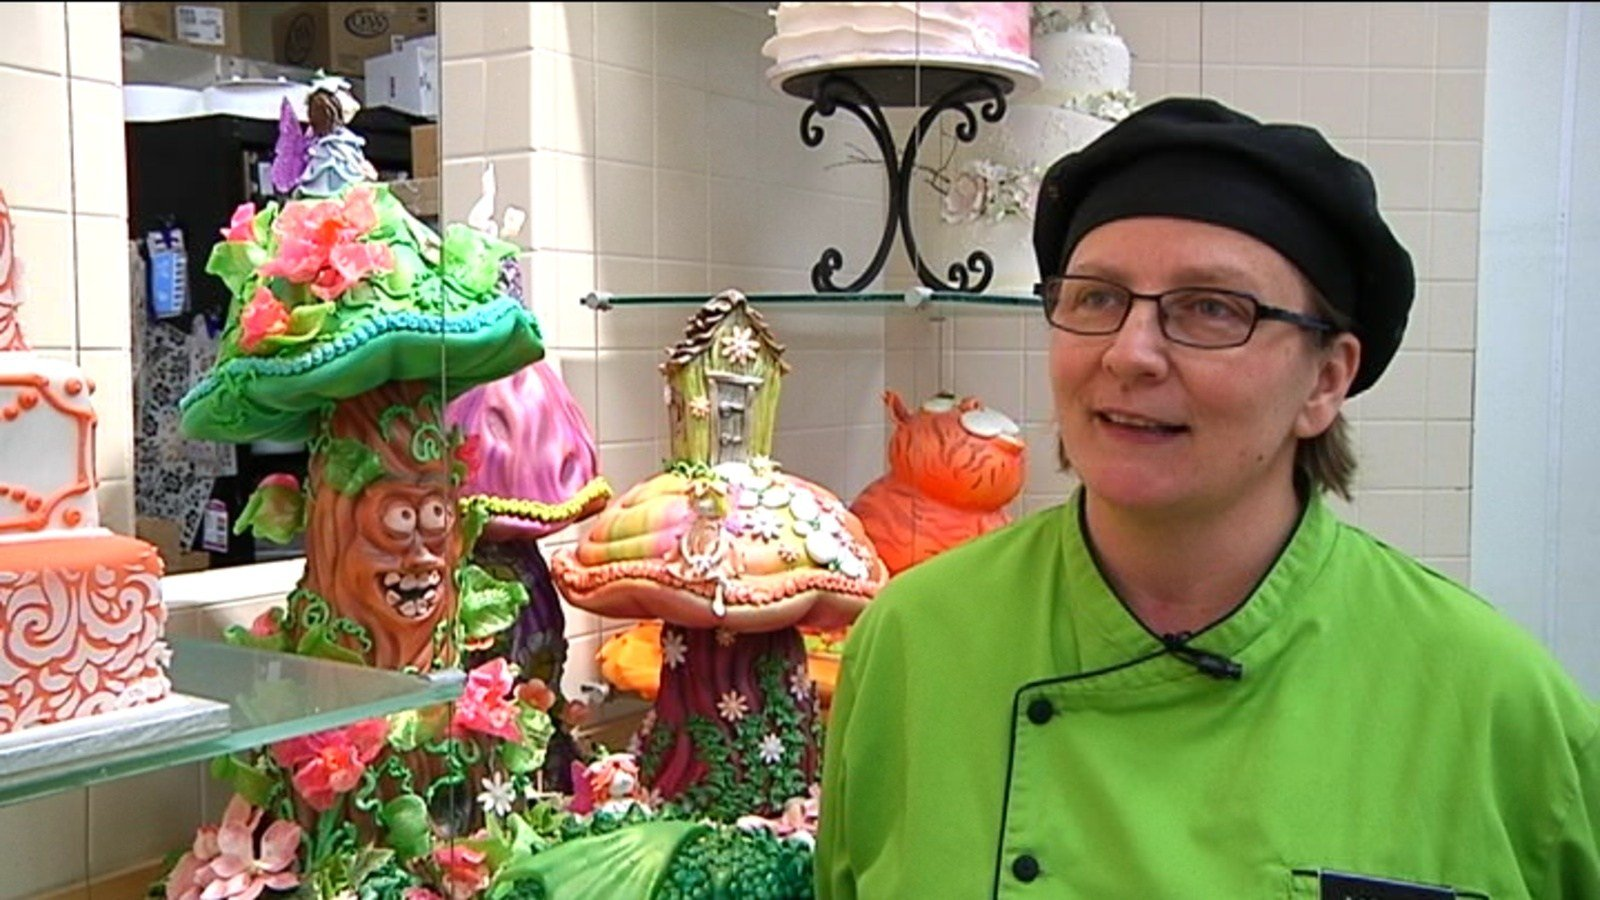 Cake Decorating Classes Mn : Rochester resident wins Midwest cake decorating contest ...